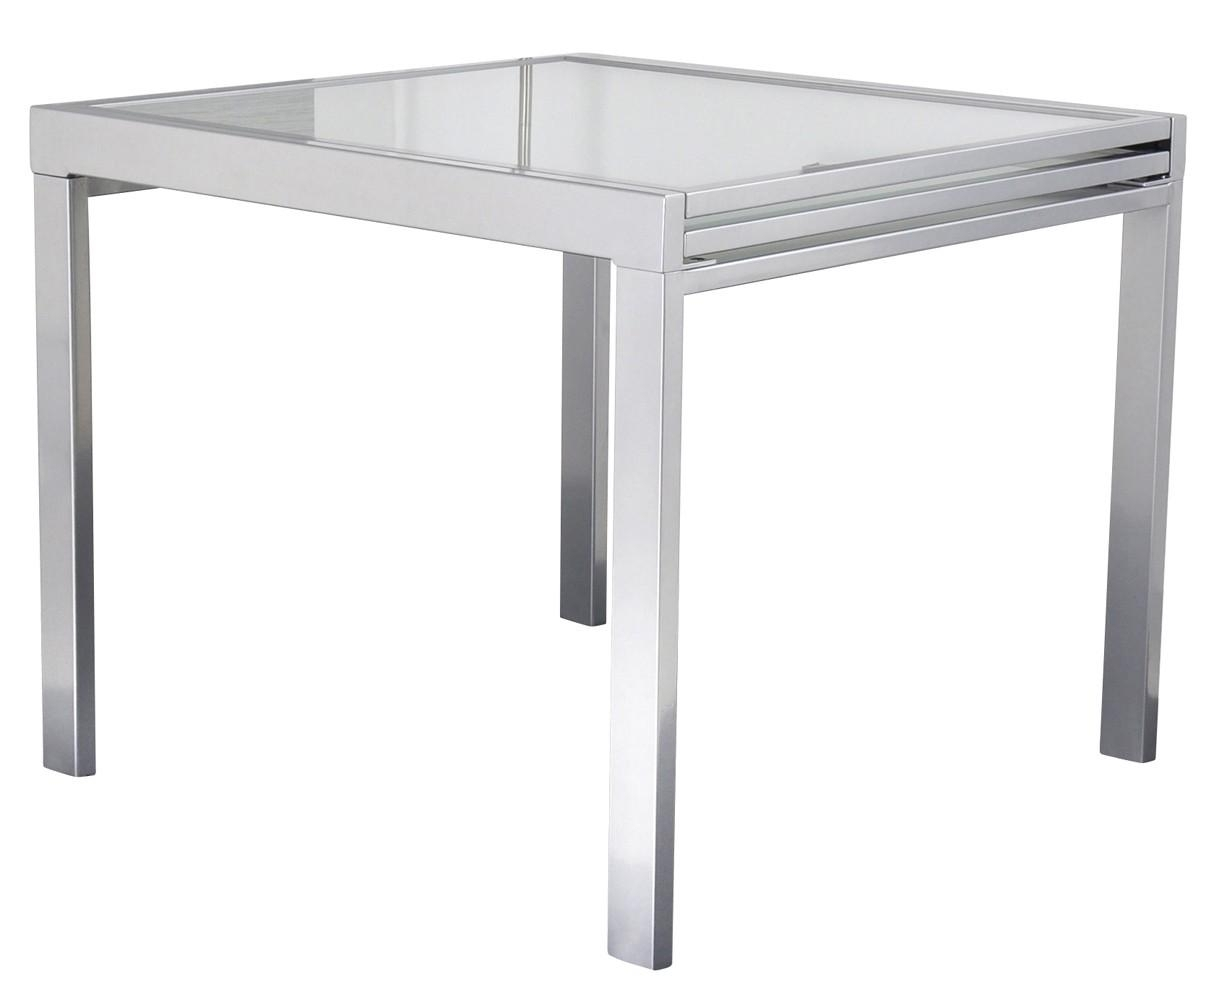 Les tendances table carr e extensible grise for Table verre blanc extensible